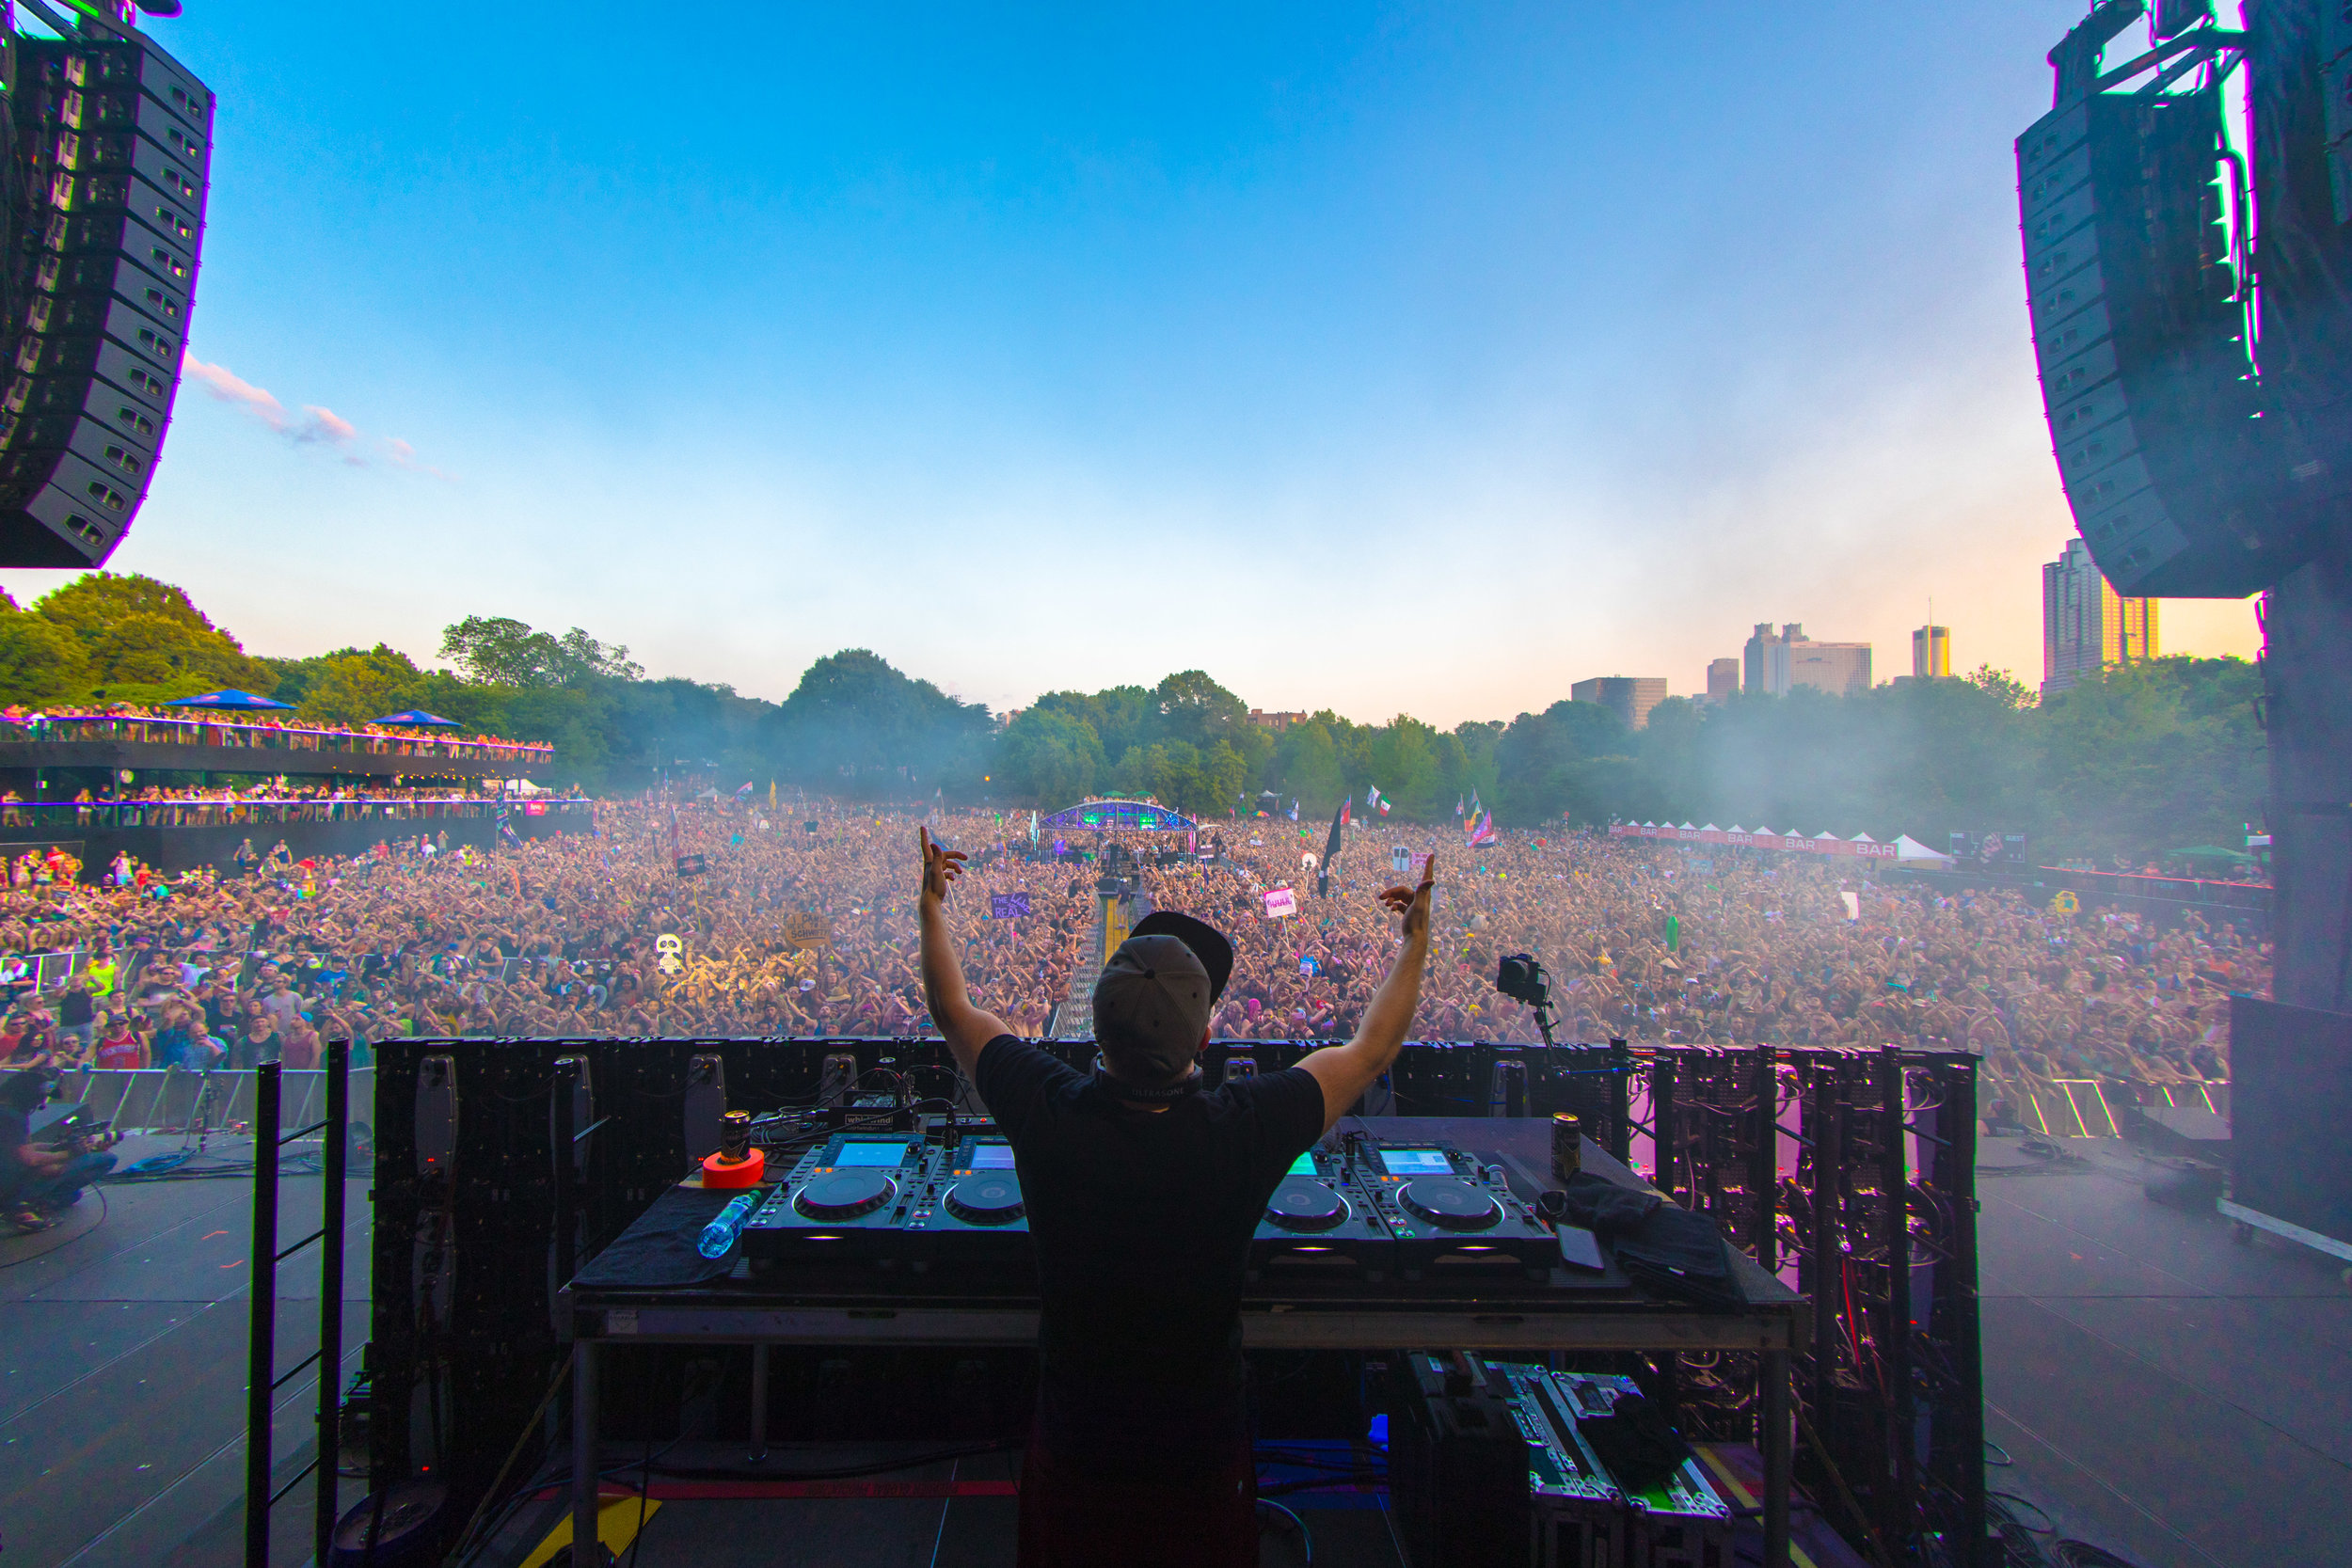 Poulos_ShakyBeats18_Excision-20.JPG